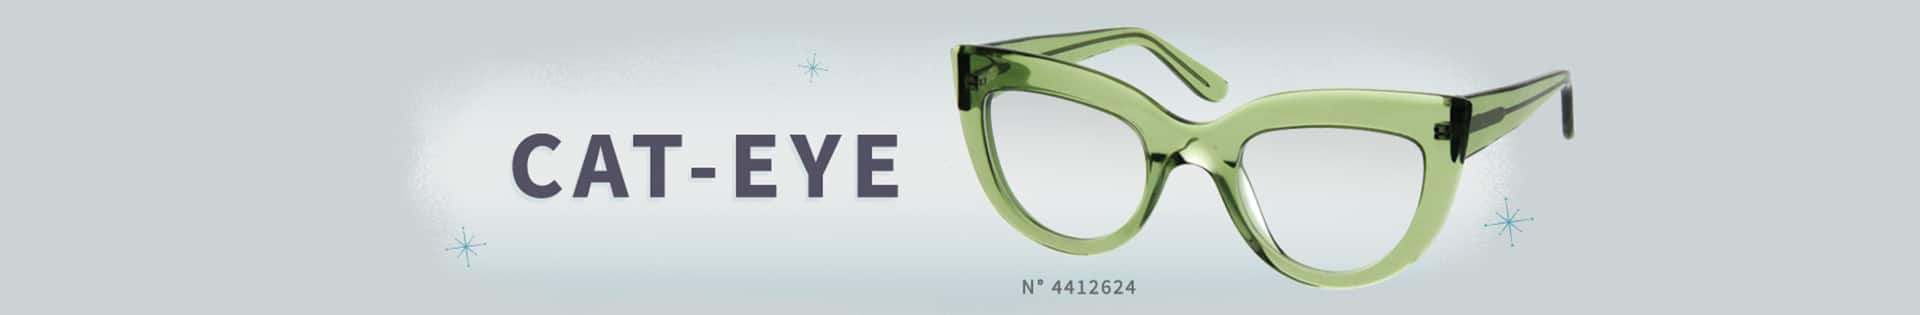 Cat-eye, frame #4412624